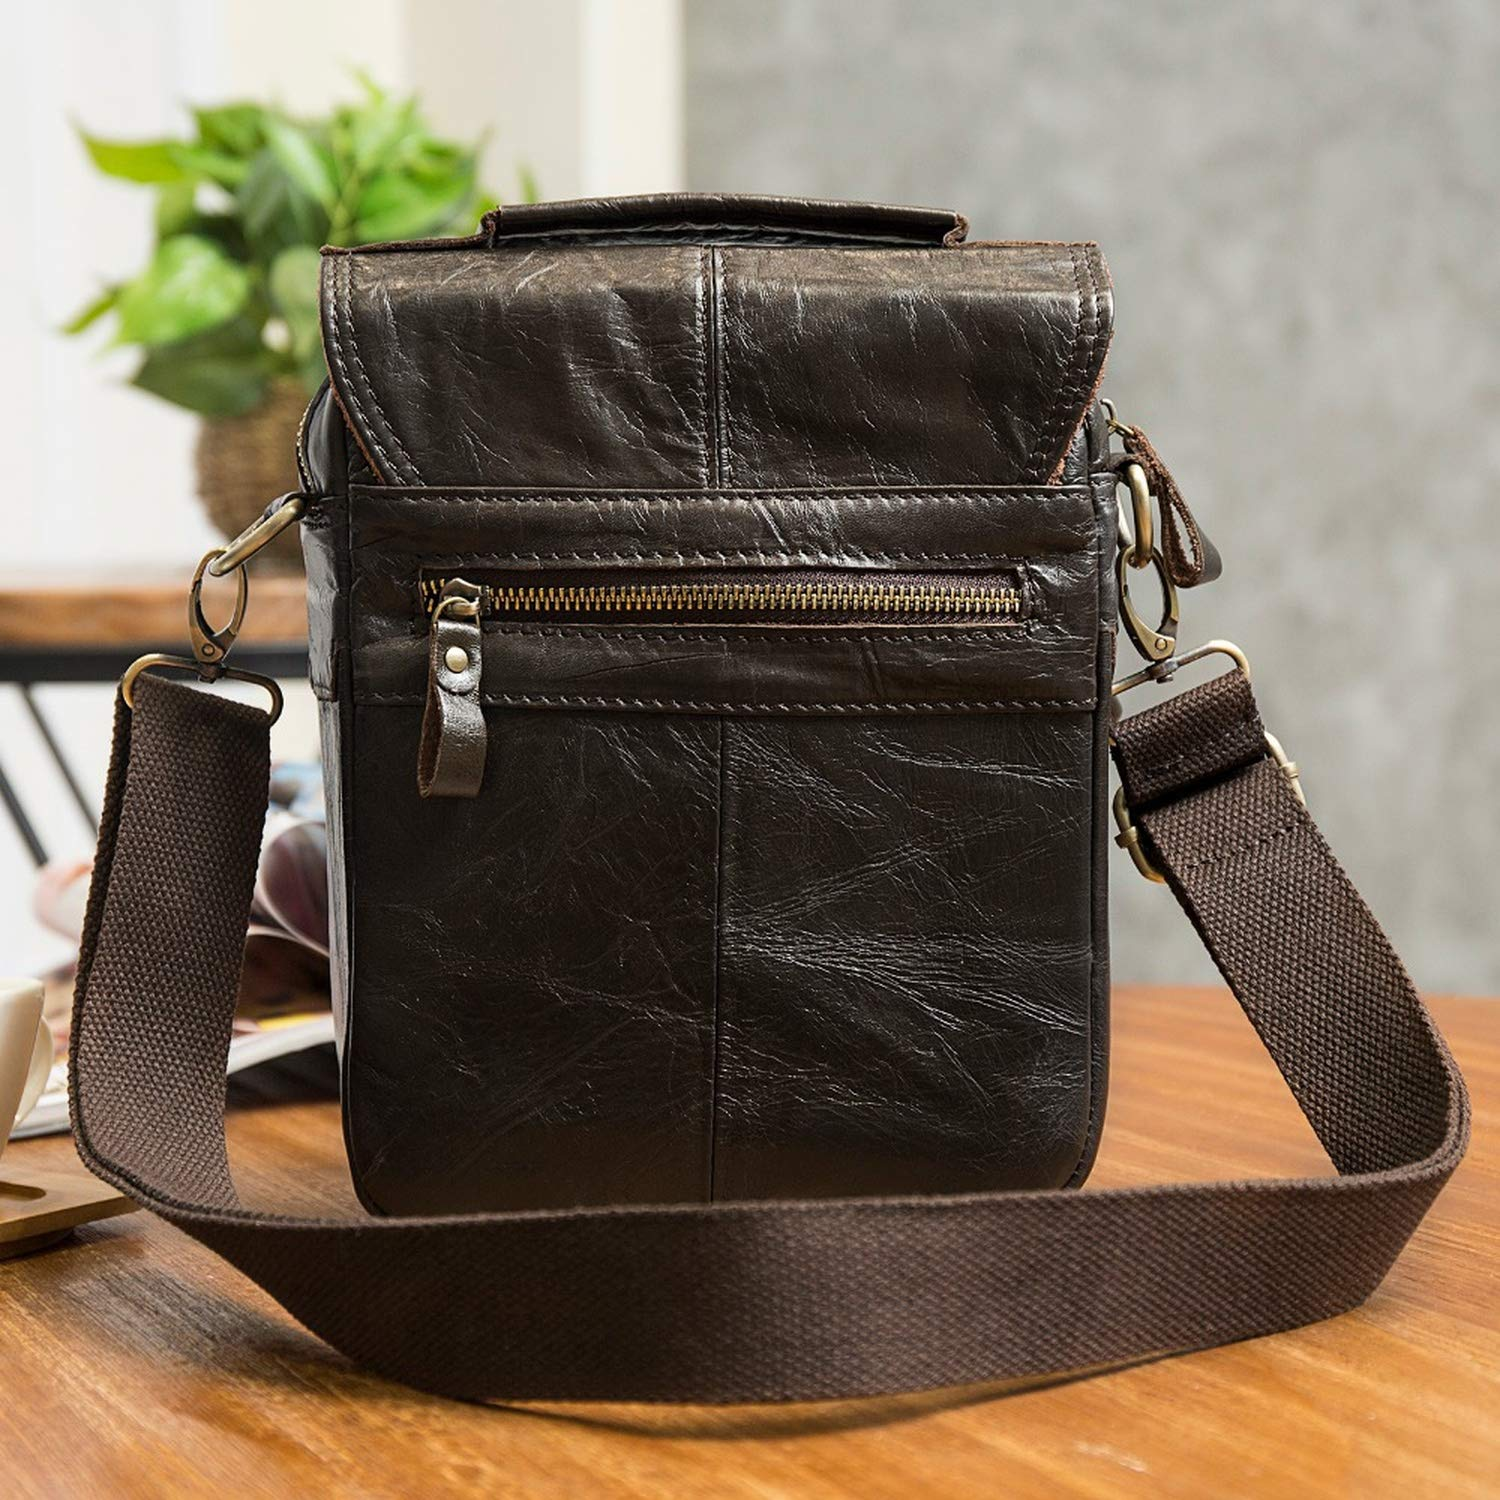 Leather Male Casual Shoulder Messenger bag Cowhide Fashion Cross-body Bag 8 Pad Tote